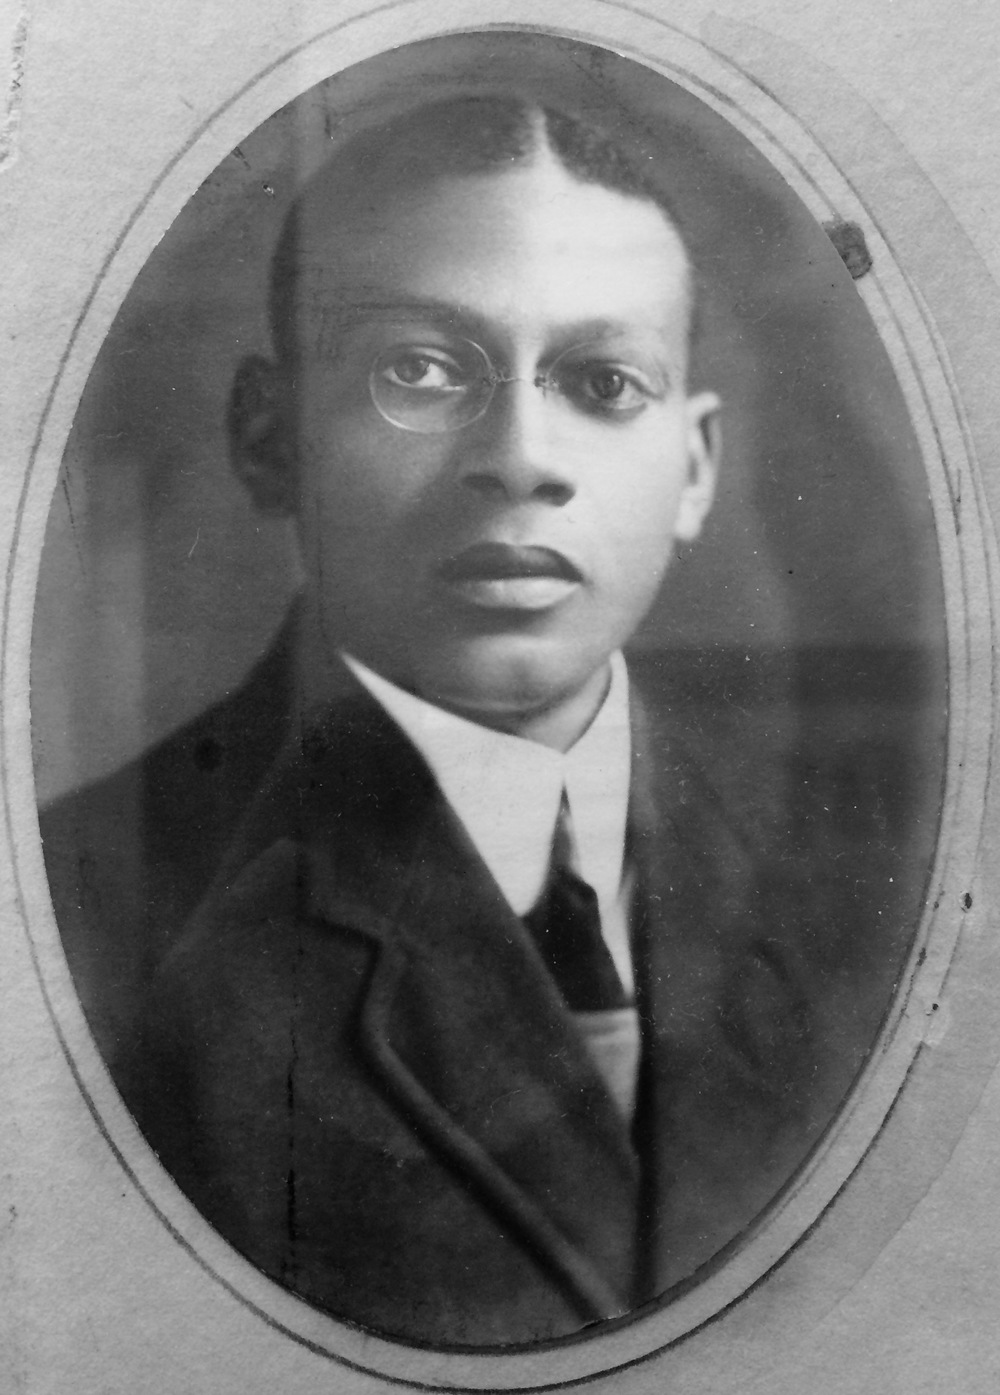 Robert L. Bailey (1912). Photo credit: Indiana University, Robert H. McKinney School of Law.